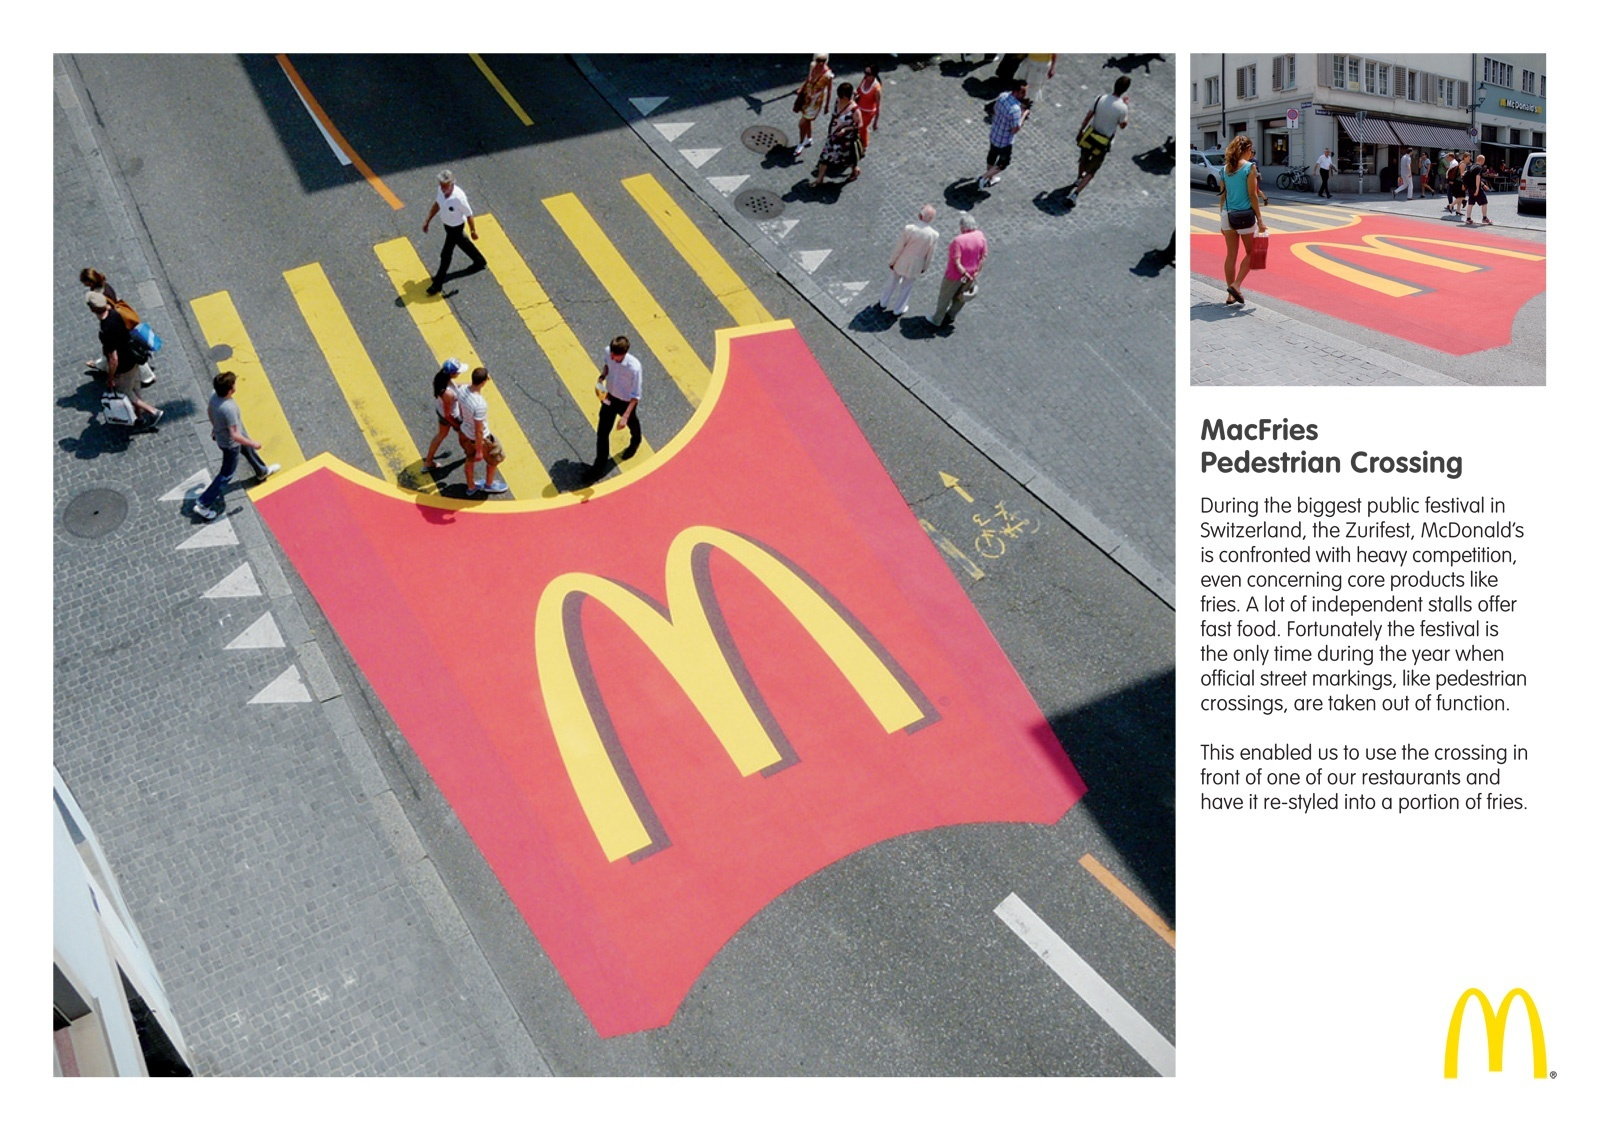 Guerilla marketing mcdonald's